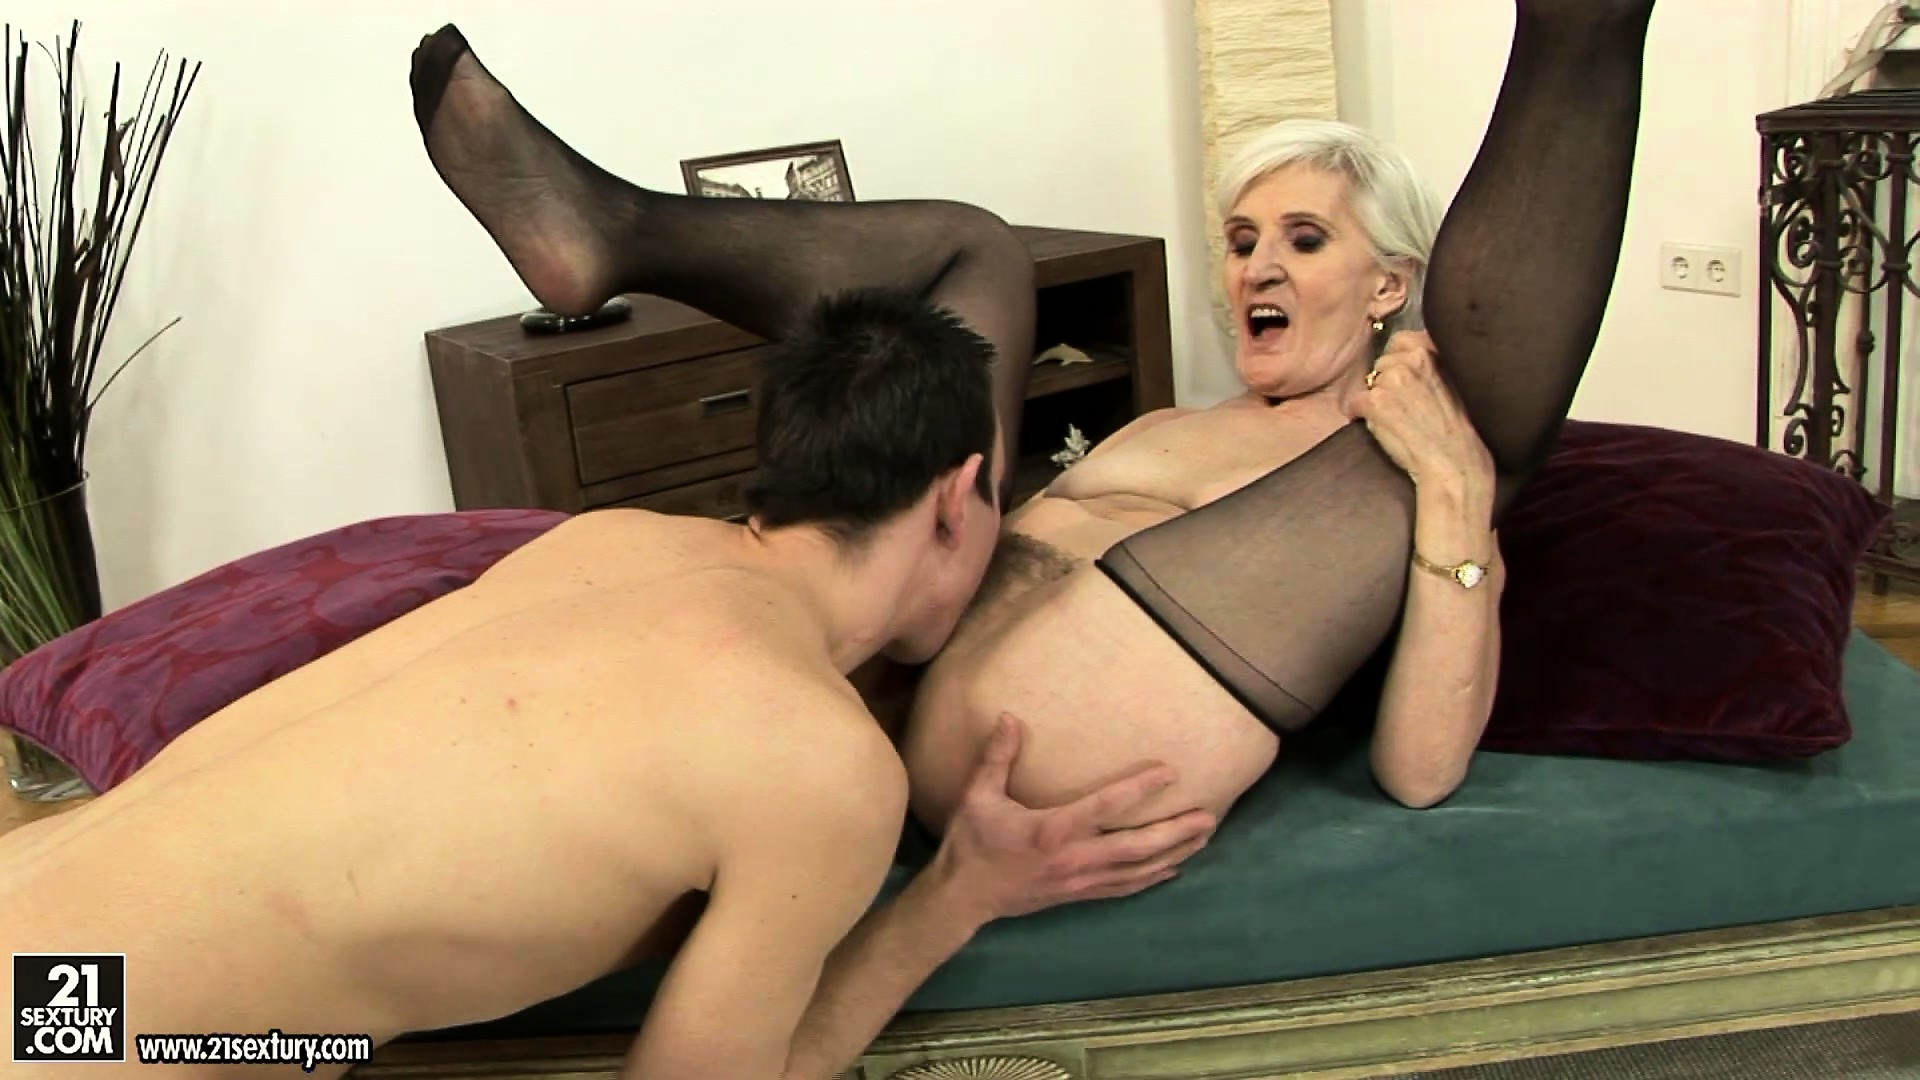 Porn Tube of Cyber-granny Found Herself A Nice Piece Of Young Meat To Eat Her Wrinkly Fur Patch